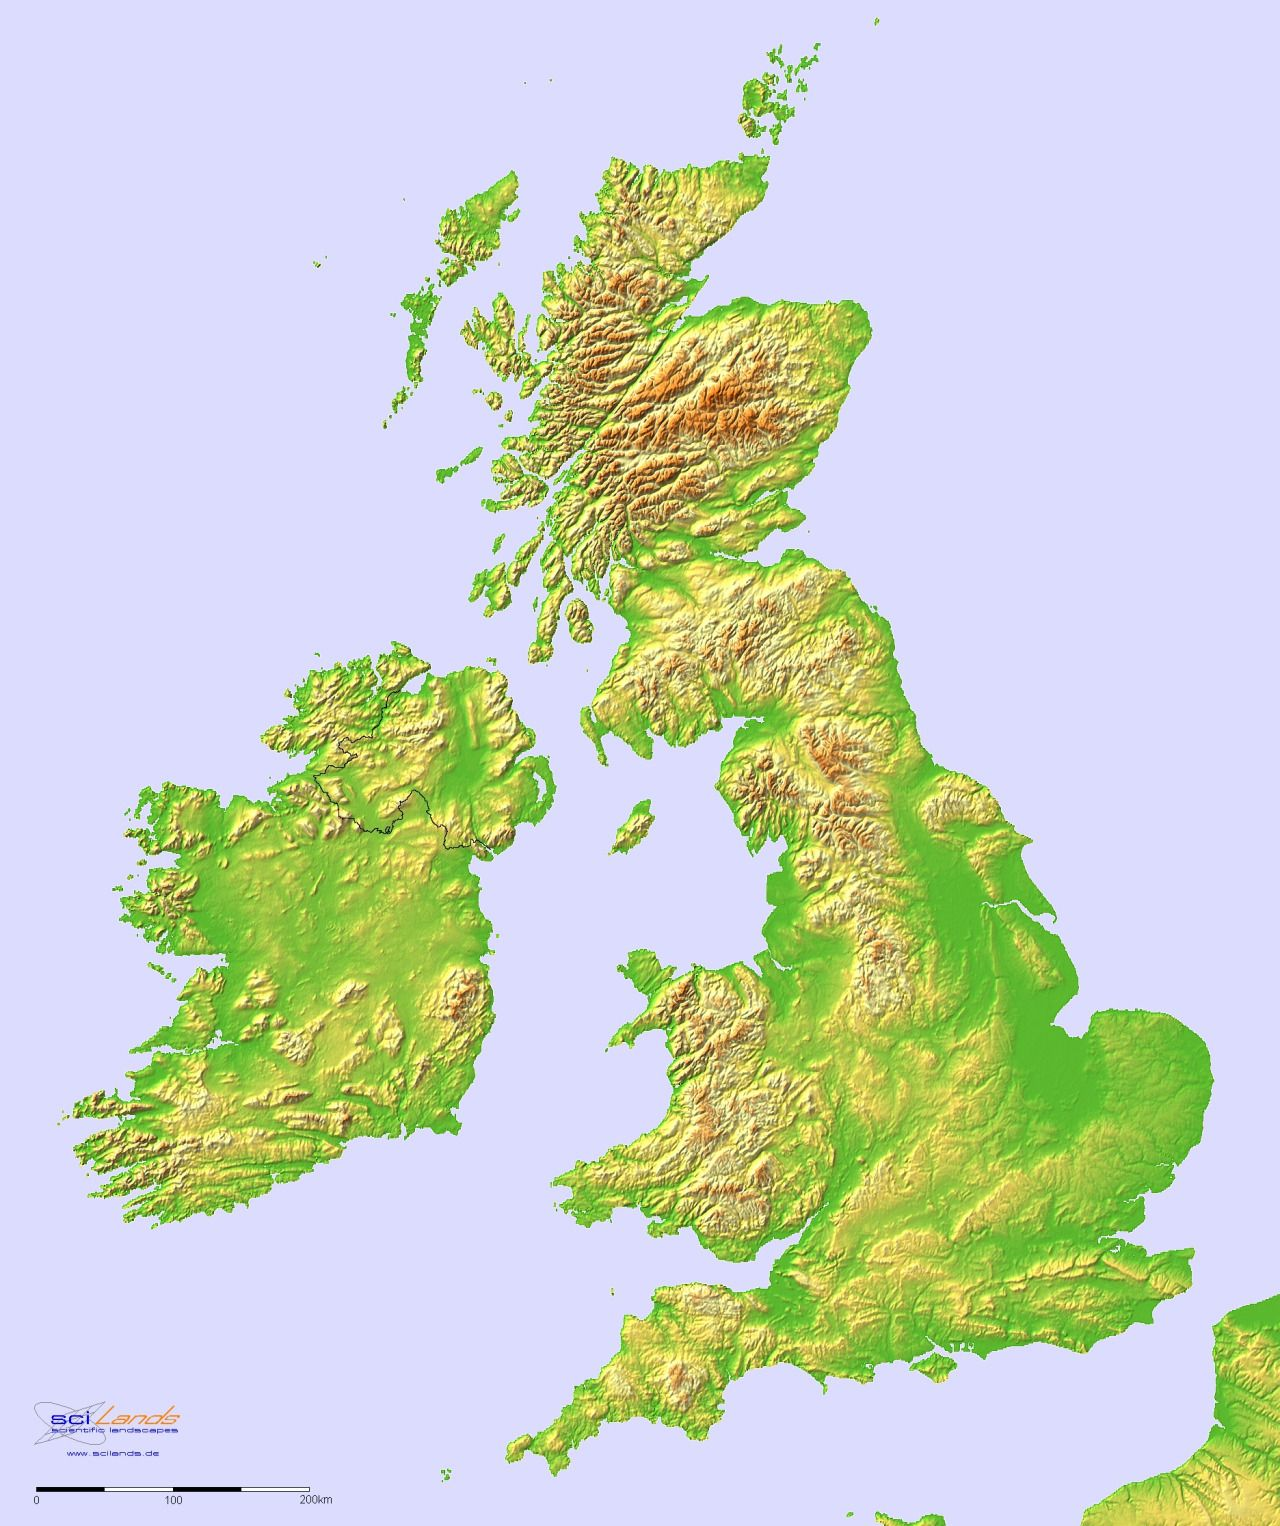 3d Relief Map Of Uk.Topographic Hillshade Map Of Great Britain And Ireland More Relief